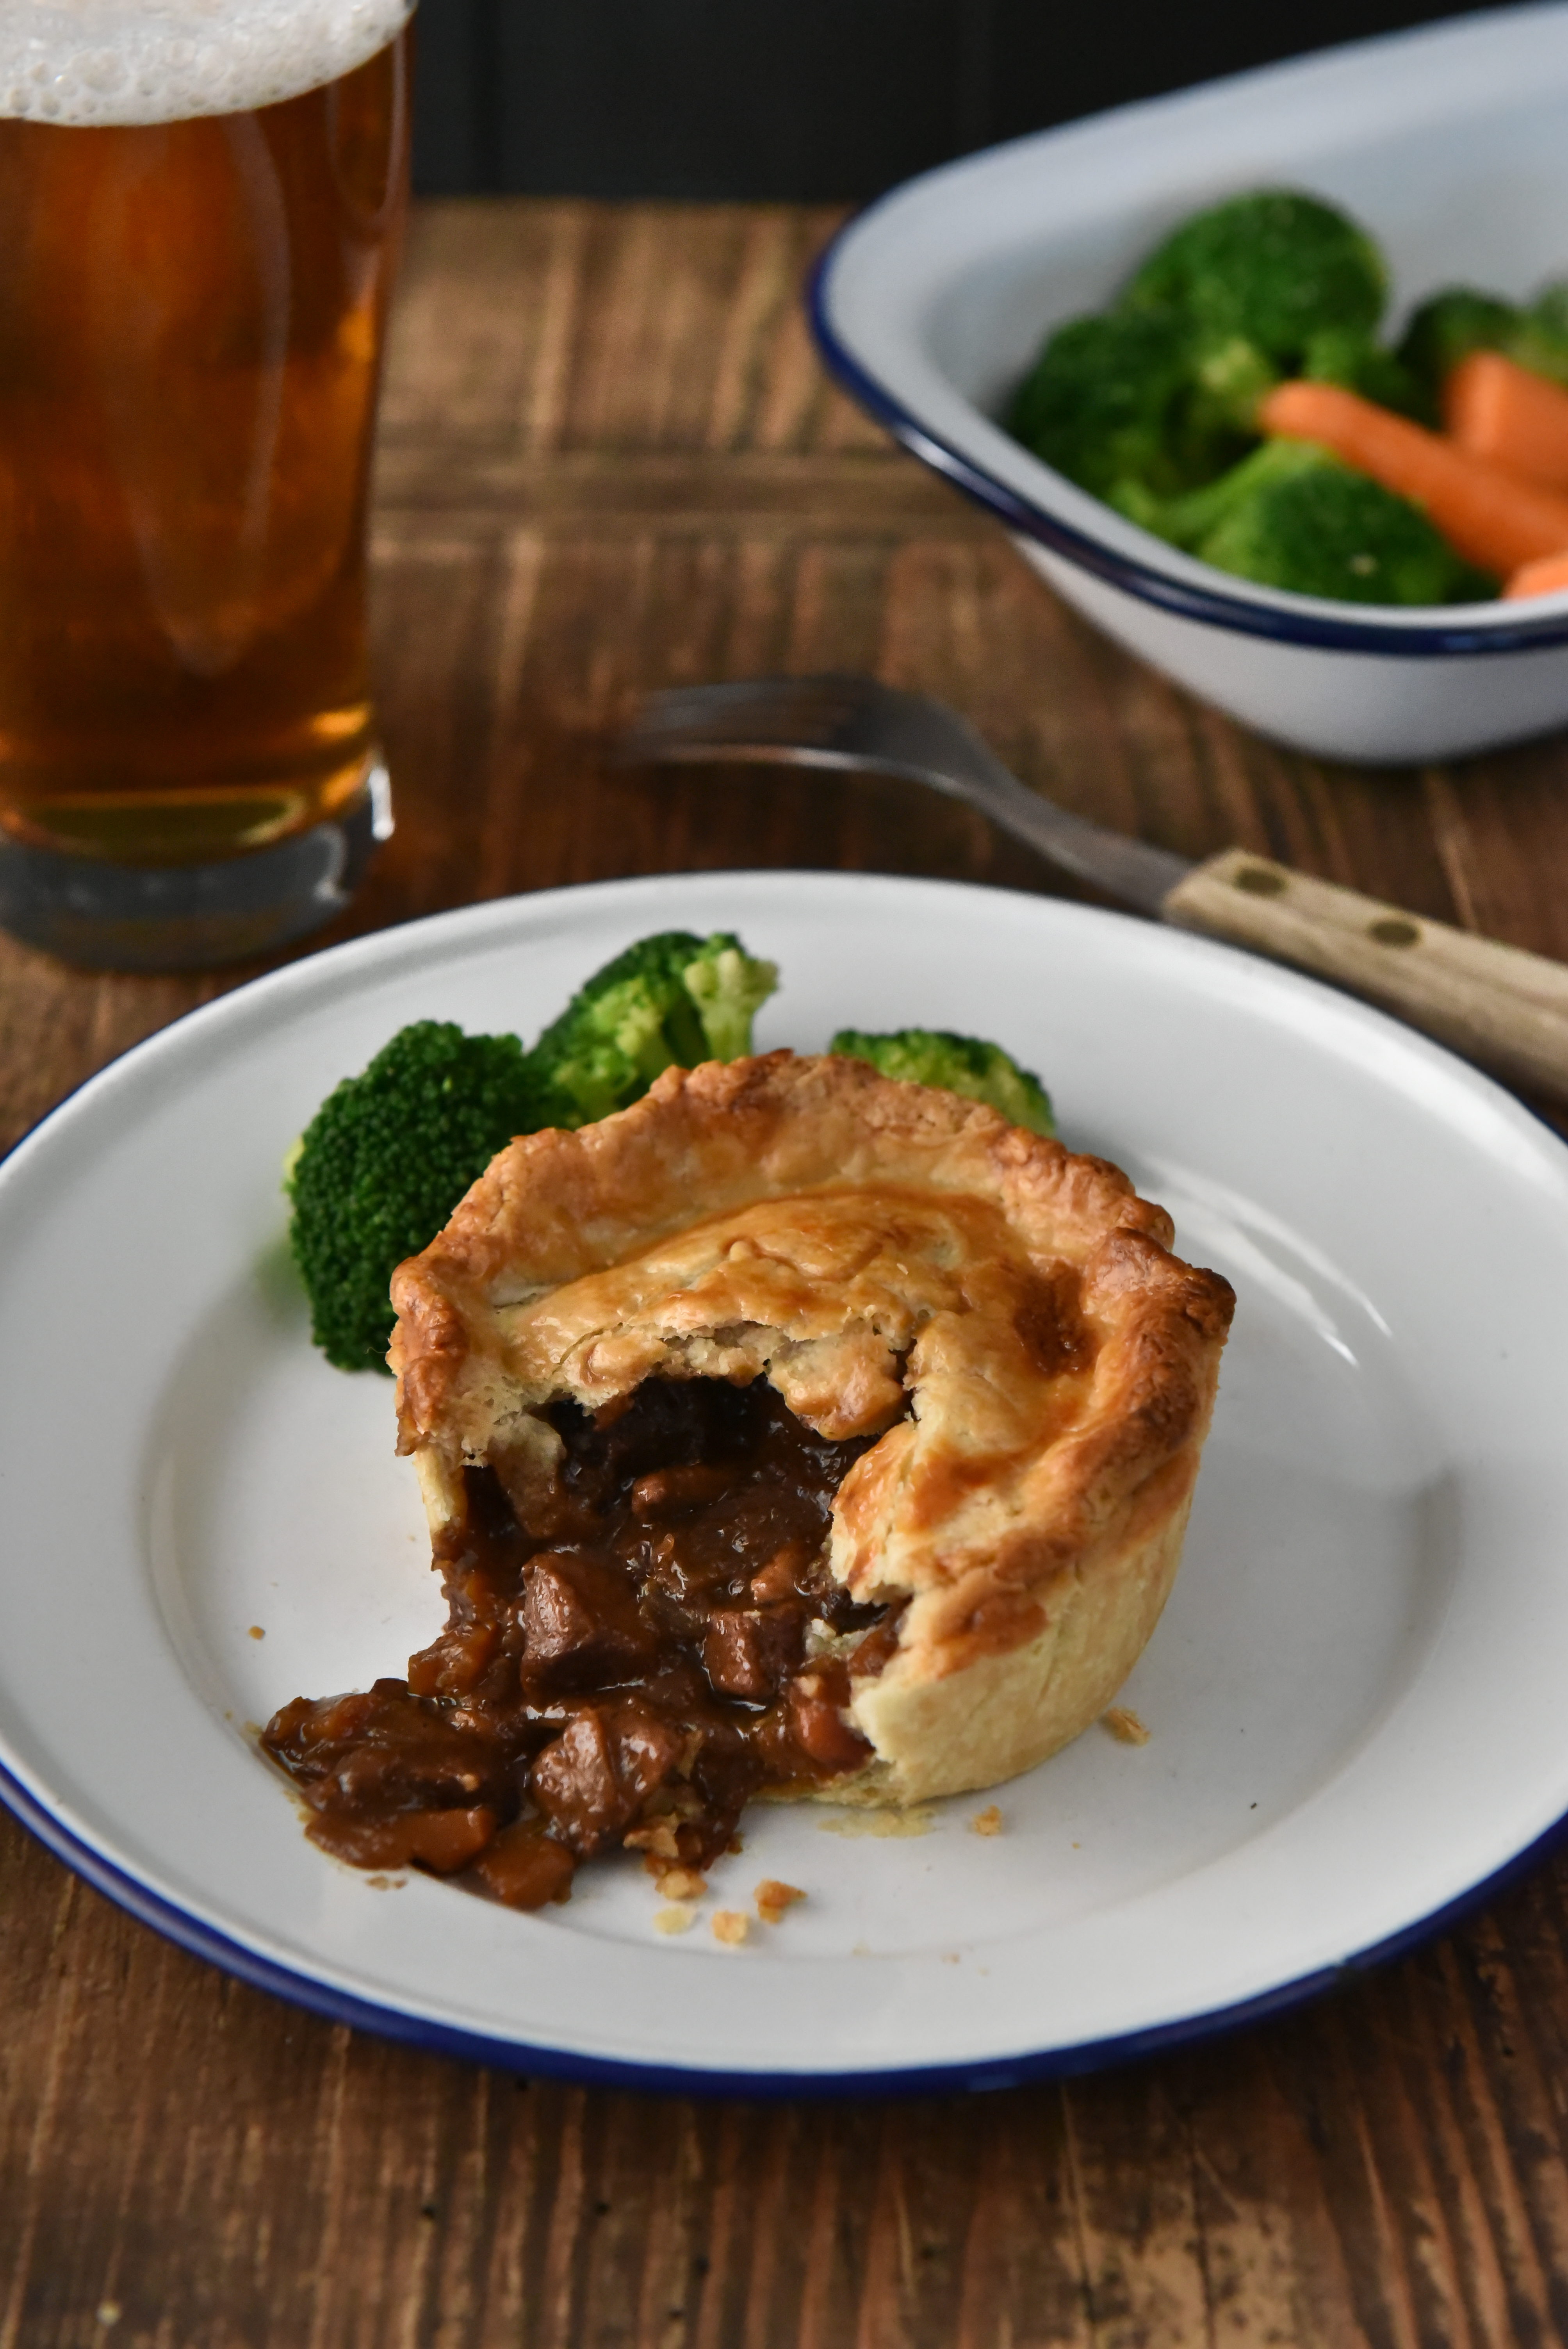 Pie making Truly traceable